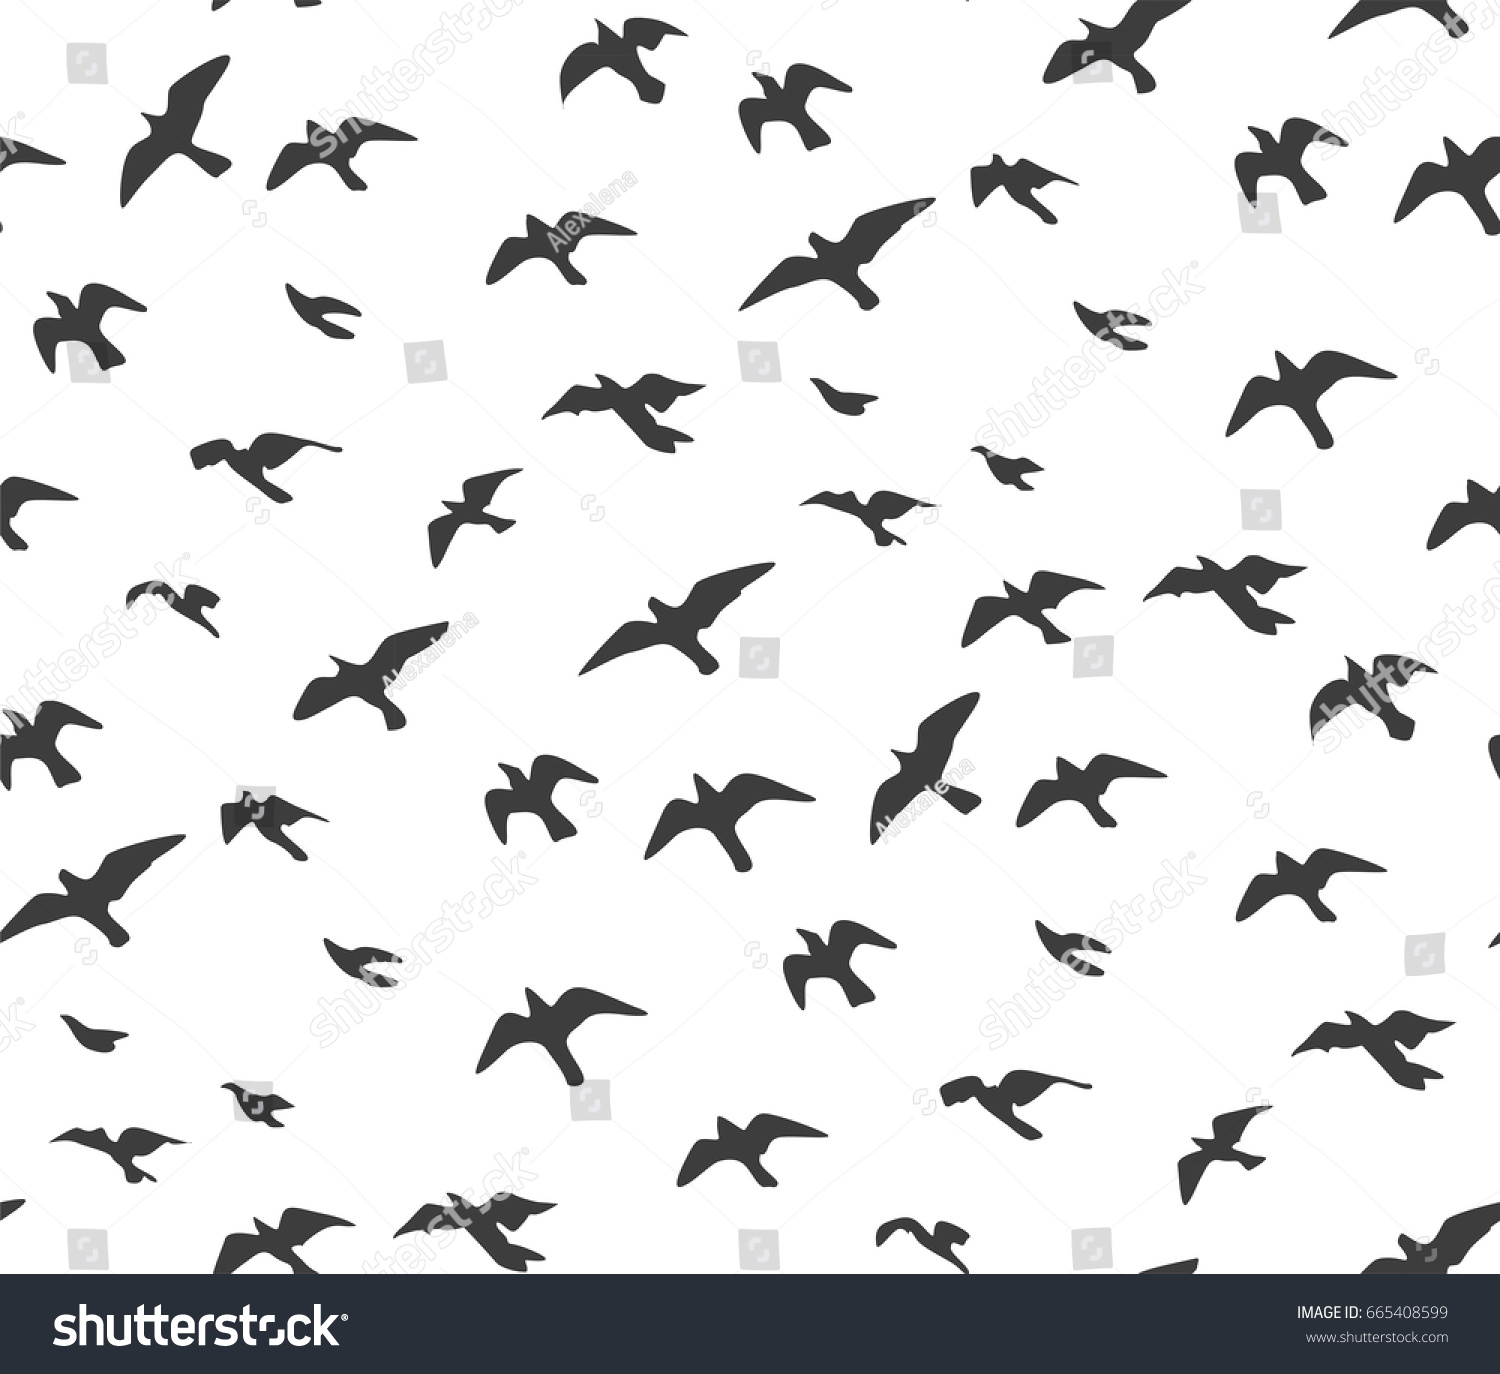 Set of sketches of flying swallows stock vector illustration -  Vectors Illustrations Footage Music A Flock Of Flying Birds Gray Silhouette Dove Seagull Sketch Set Abstract Bird